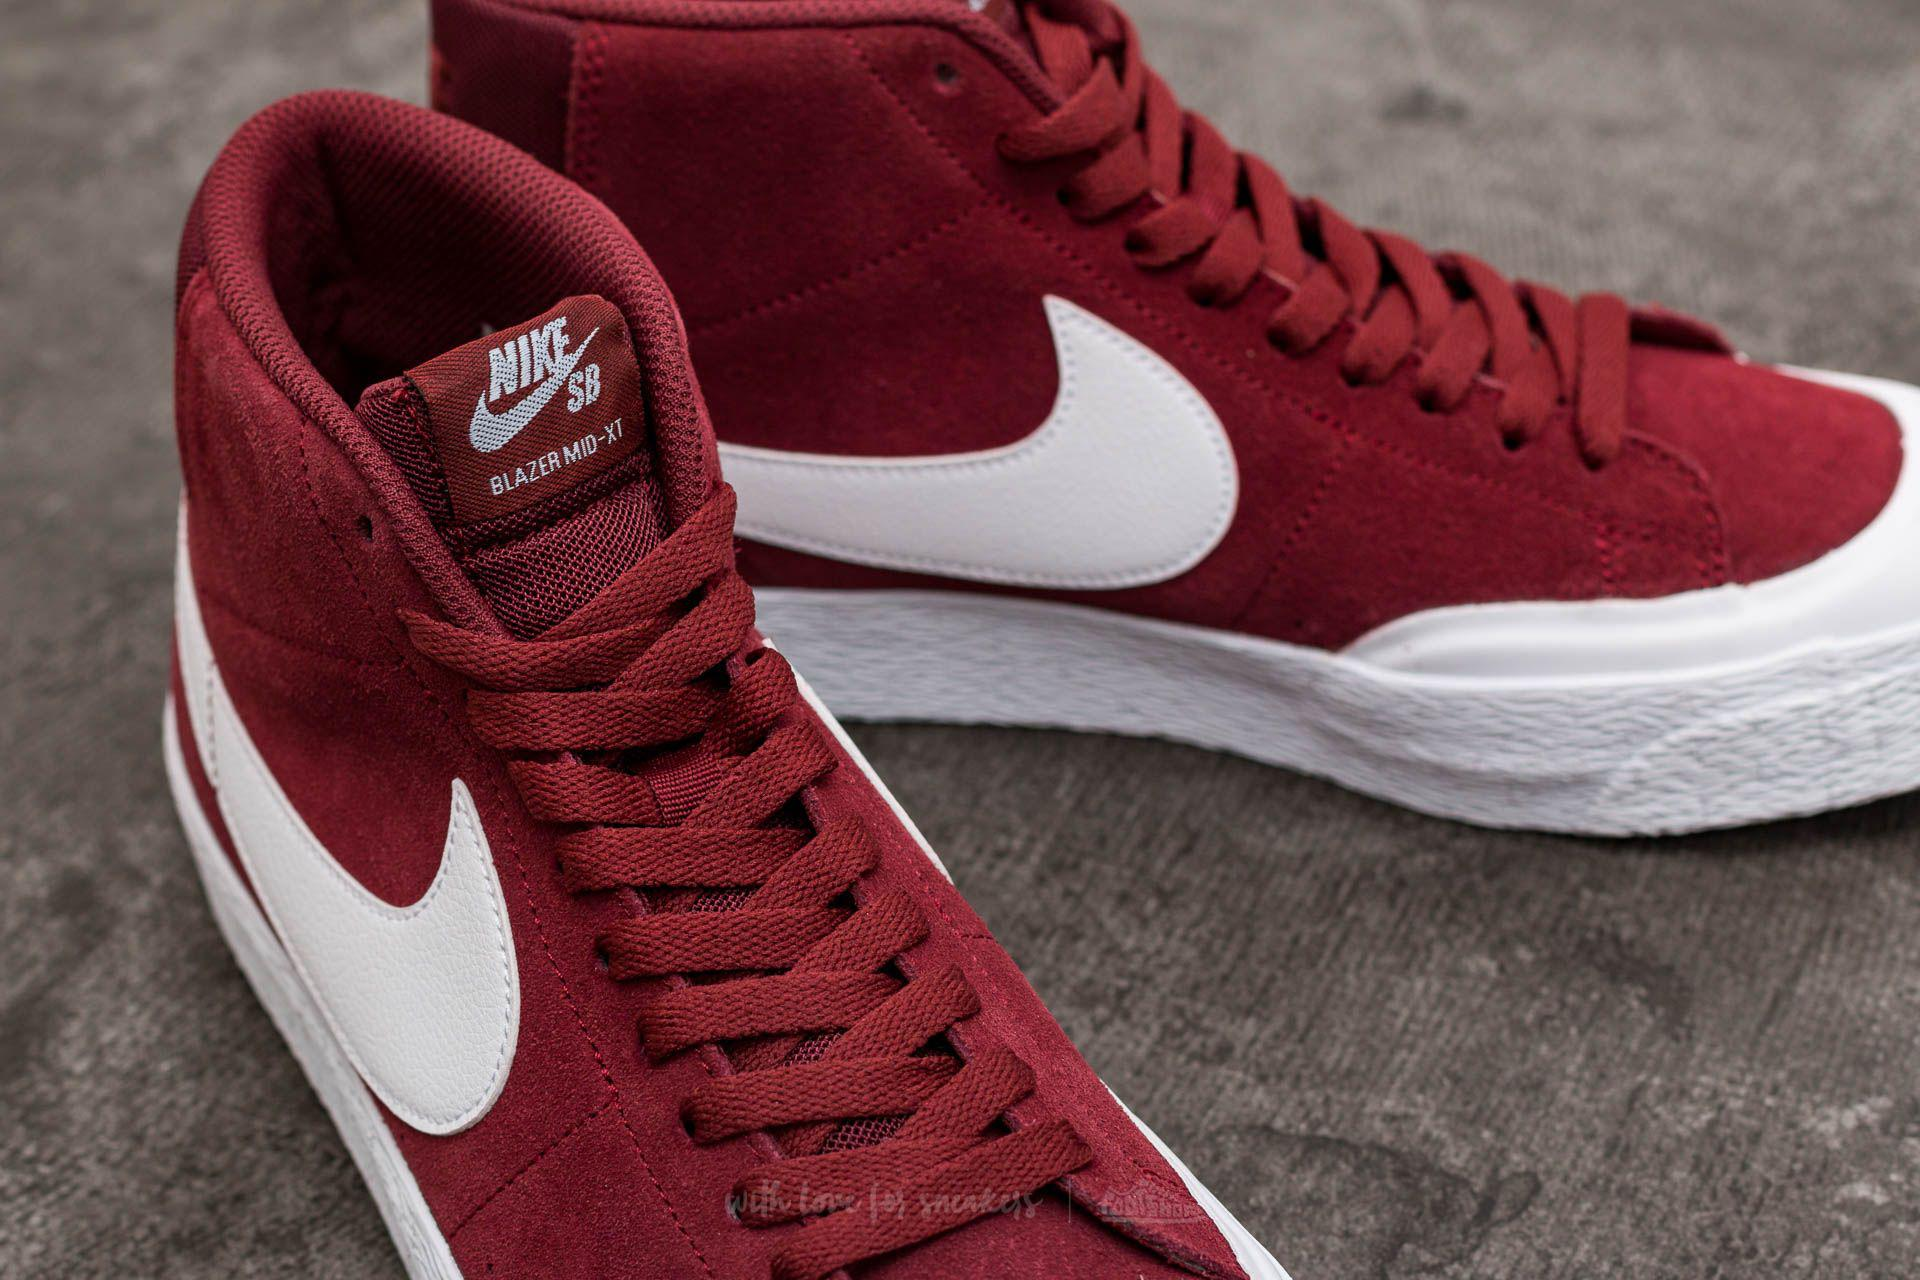 8557fe5e4e9a Lyst - Nike Sb Blazer Zoom Mid Xt Dark Team Red  White in Red for Men